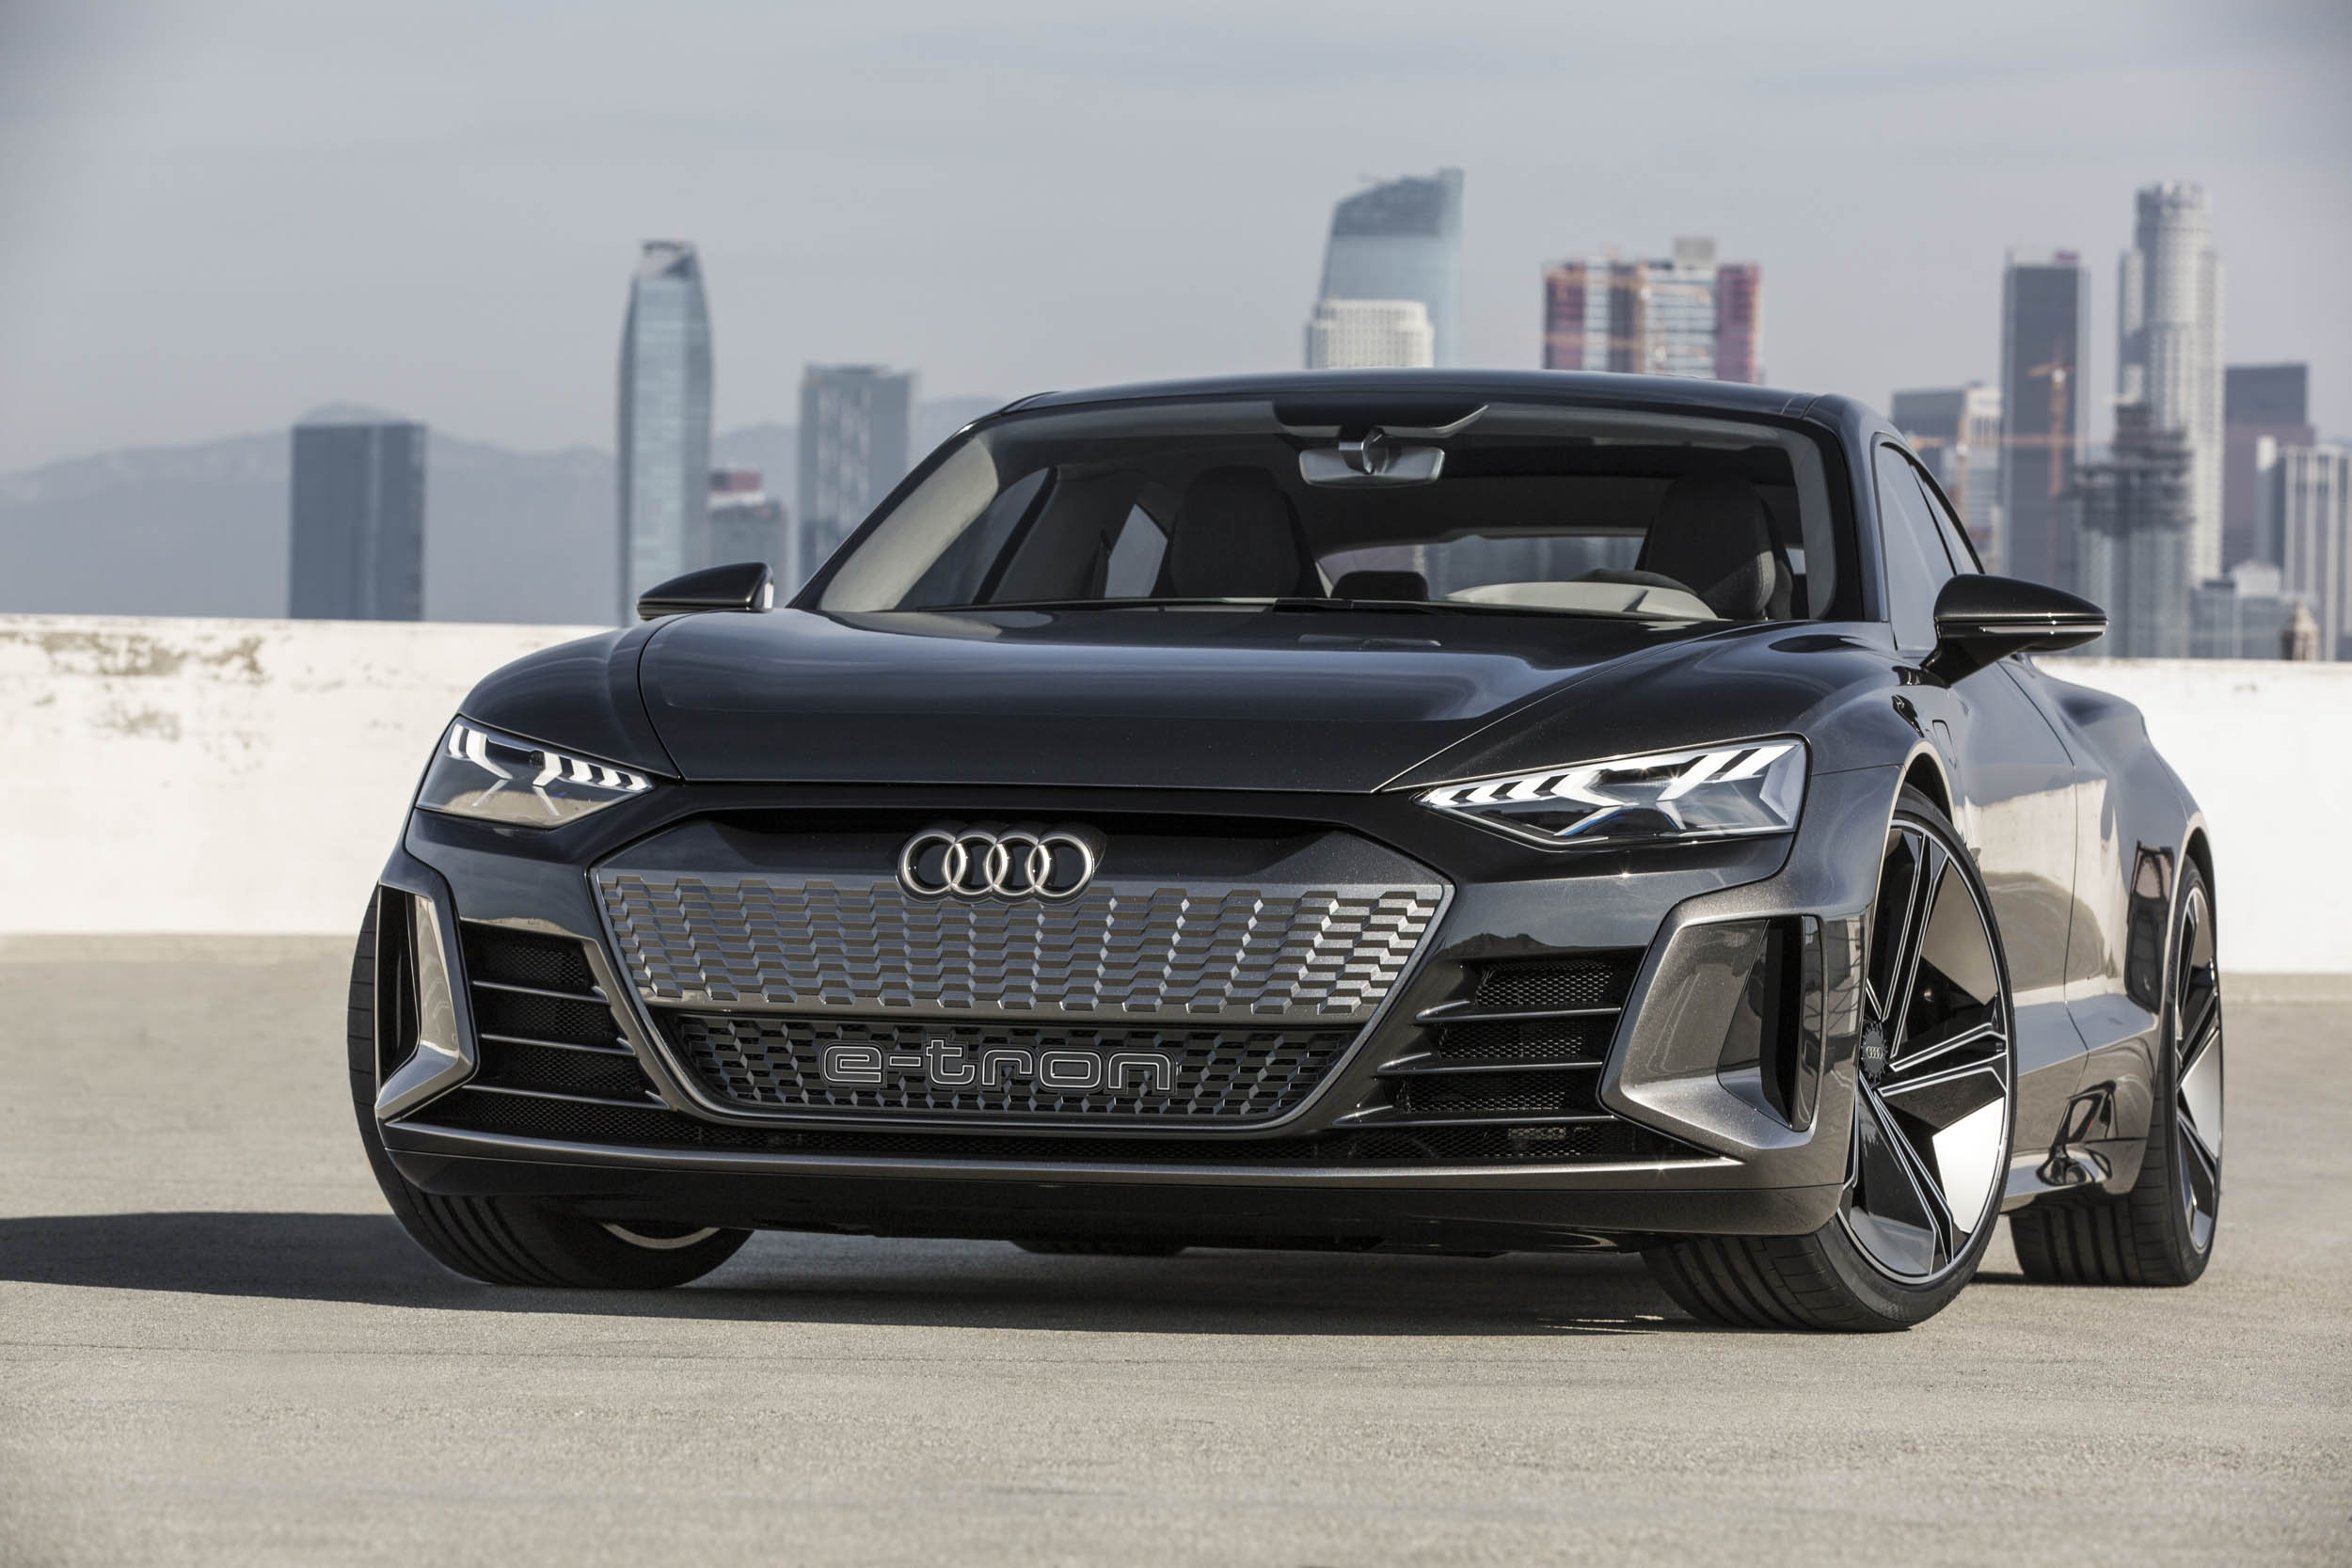 The Audi e-tron GT looks good without being too far out  thumbnail